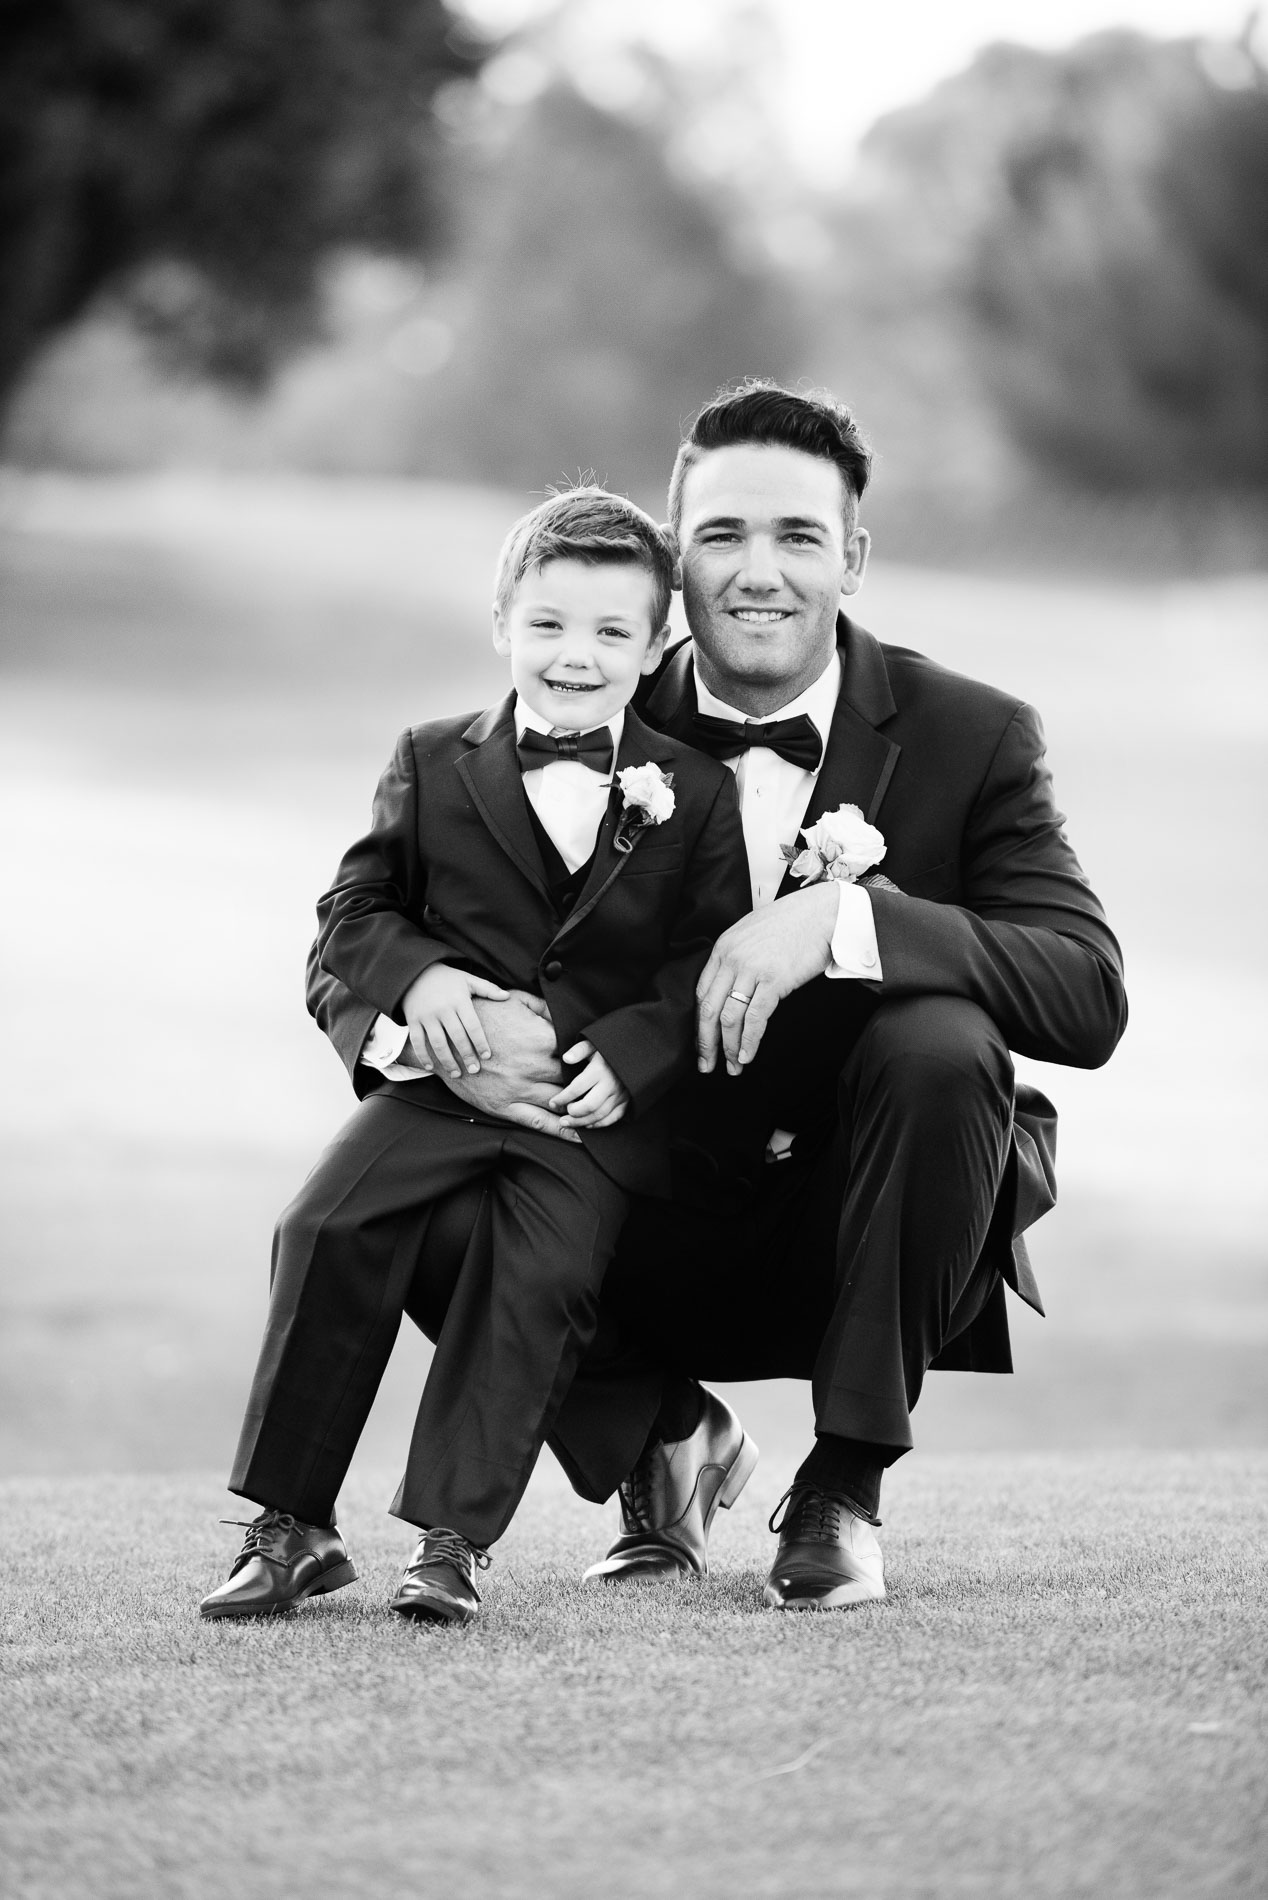 Special moment father son black and white wedding photo